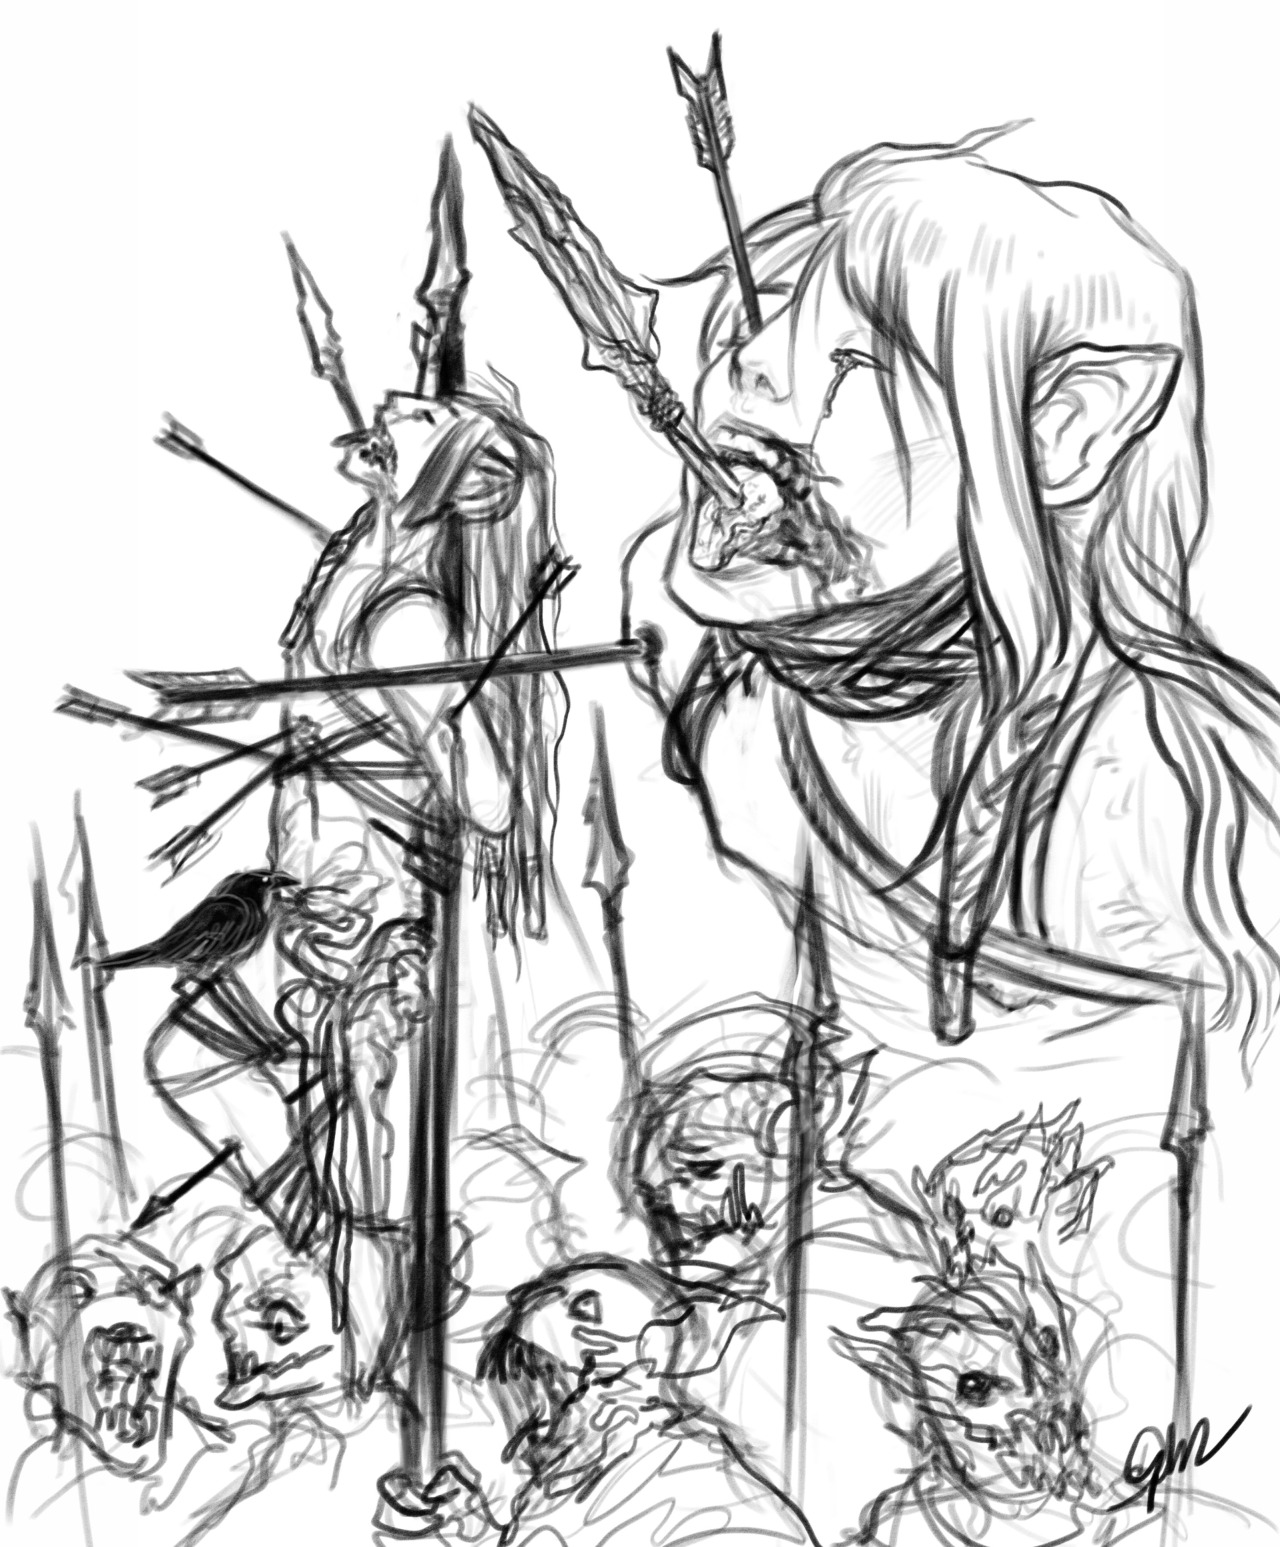 1280x1547 Rough Of Celebrimbor's Corpse As A Banner For Sauron's Army